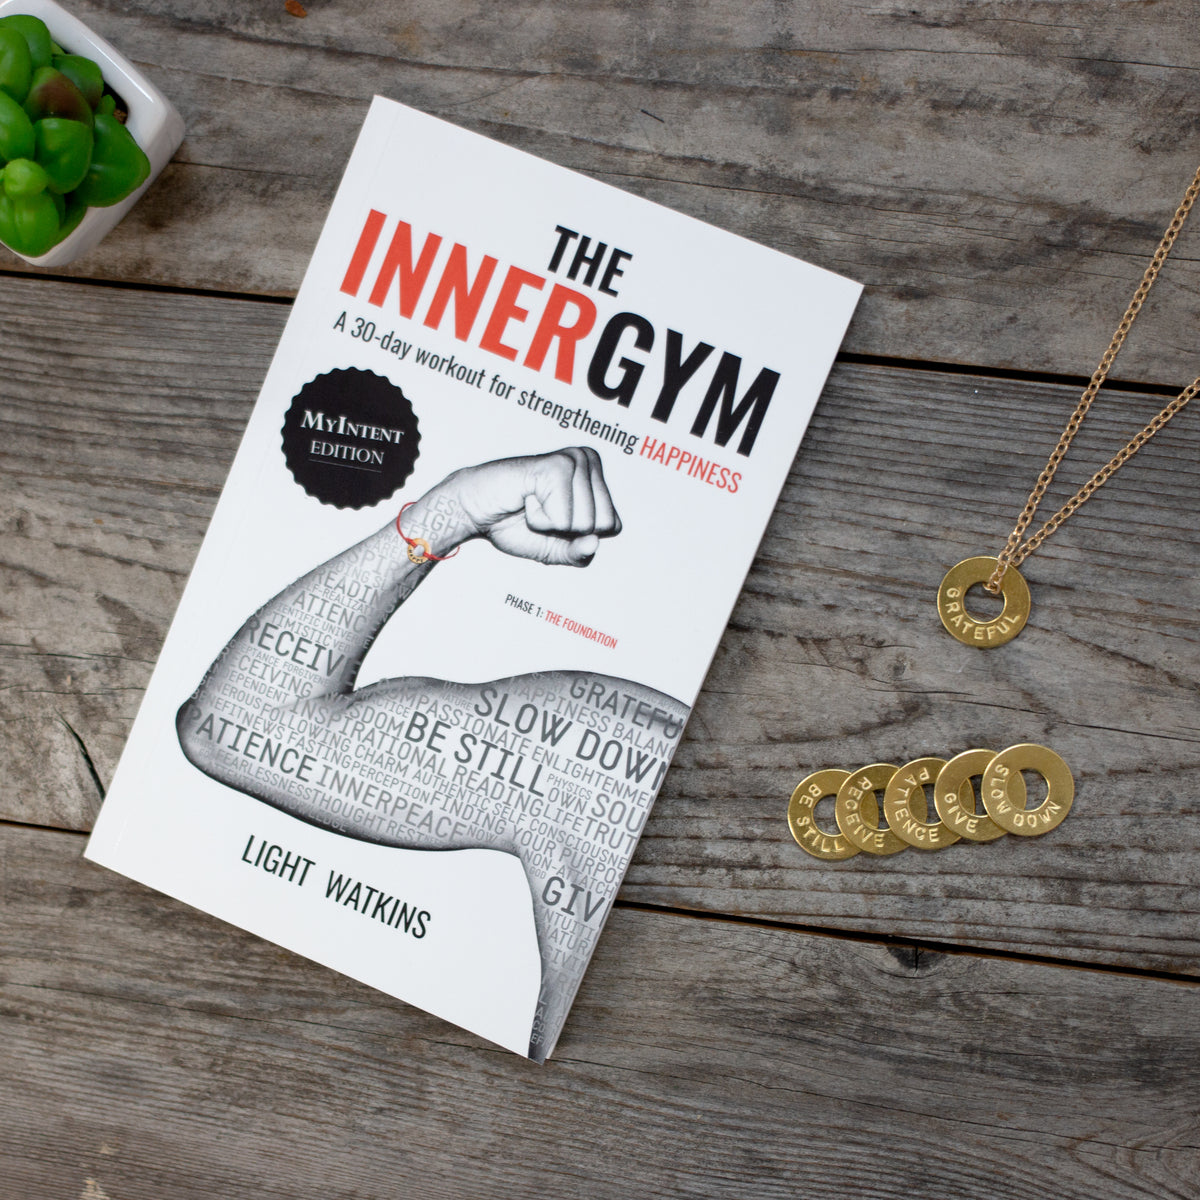 The Inner Gym book with a MyIntent brass chain necklace with 6 tokens each with an own unique word